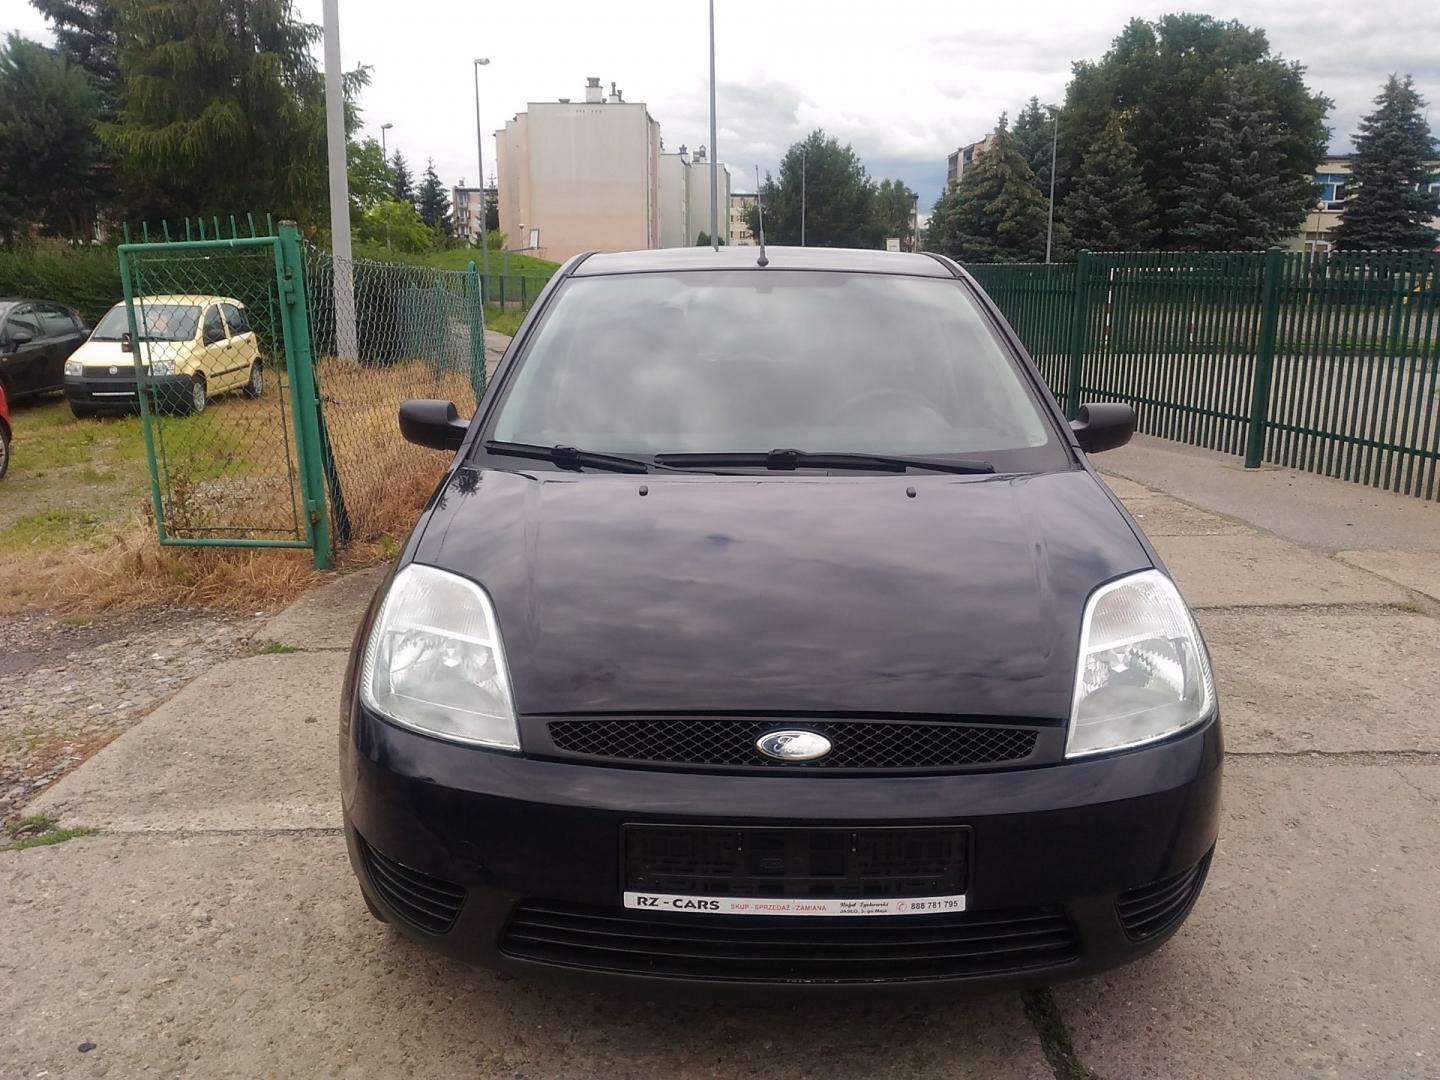 Ford Fiesta 1.3 Benzyna 2005